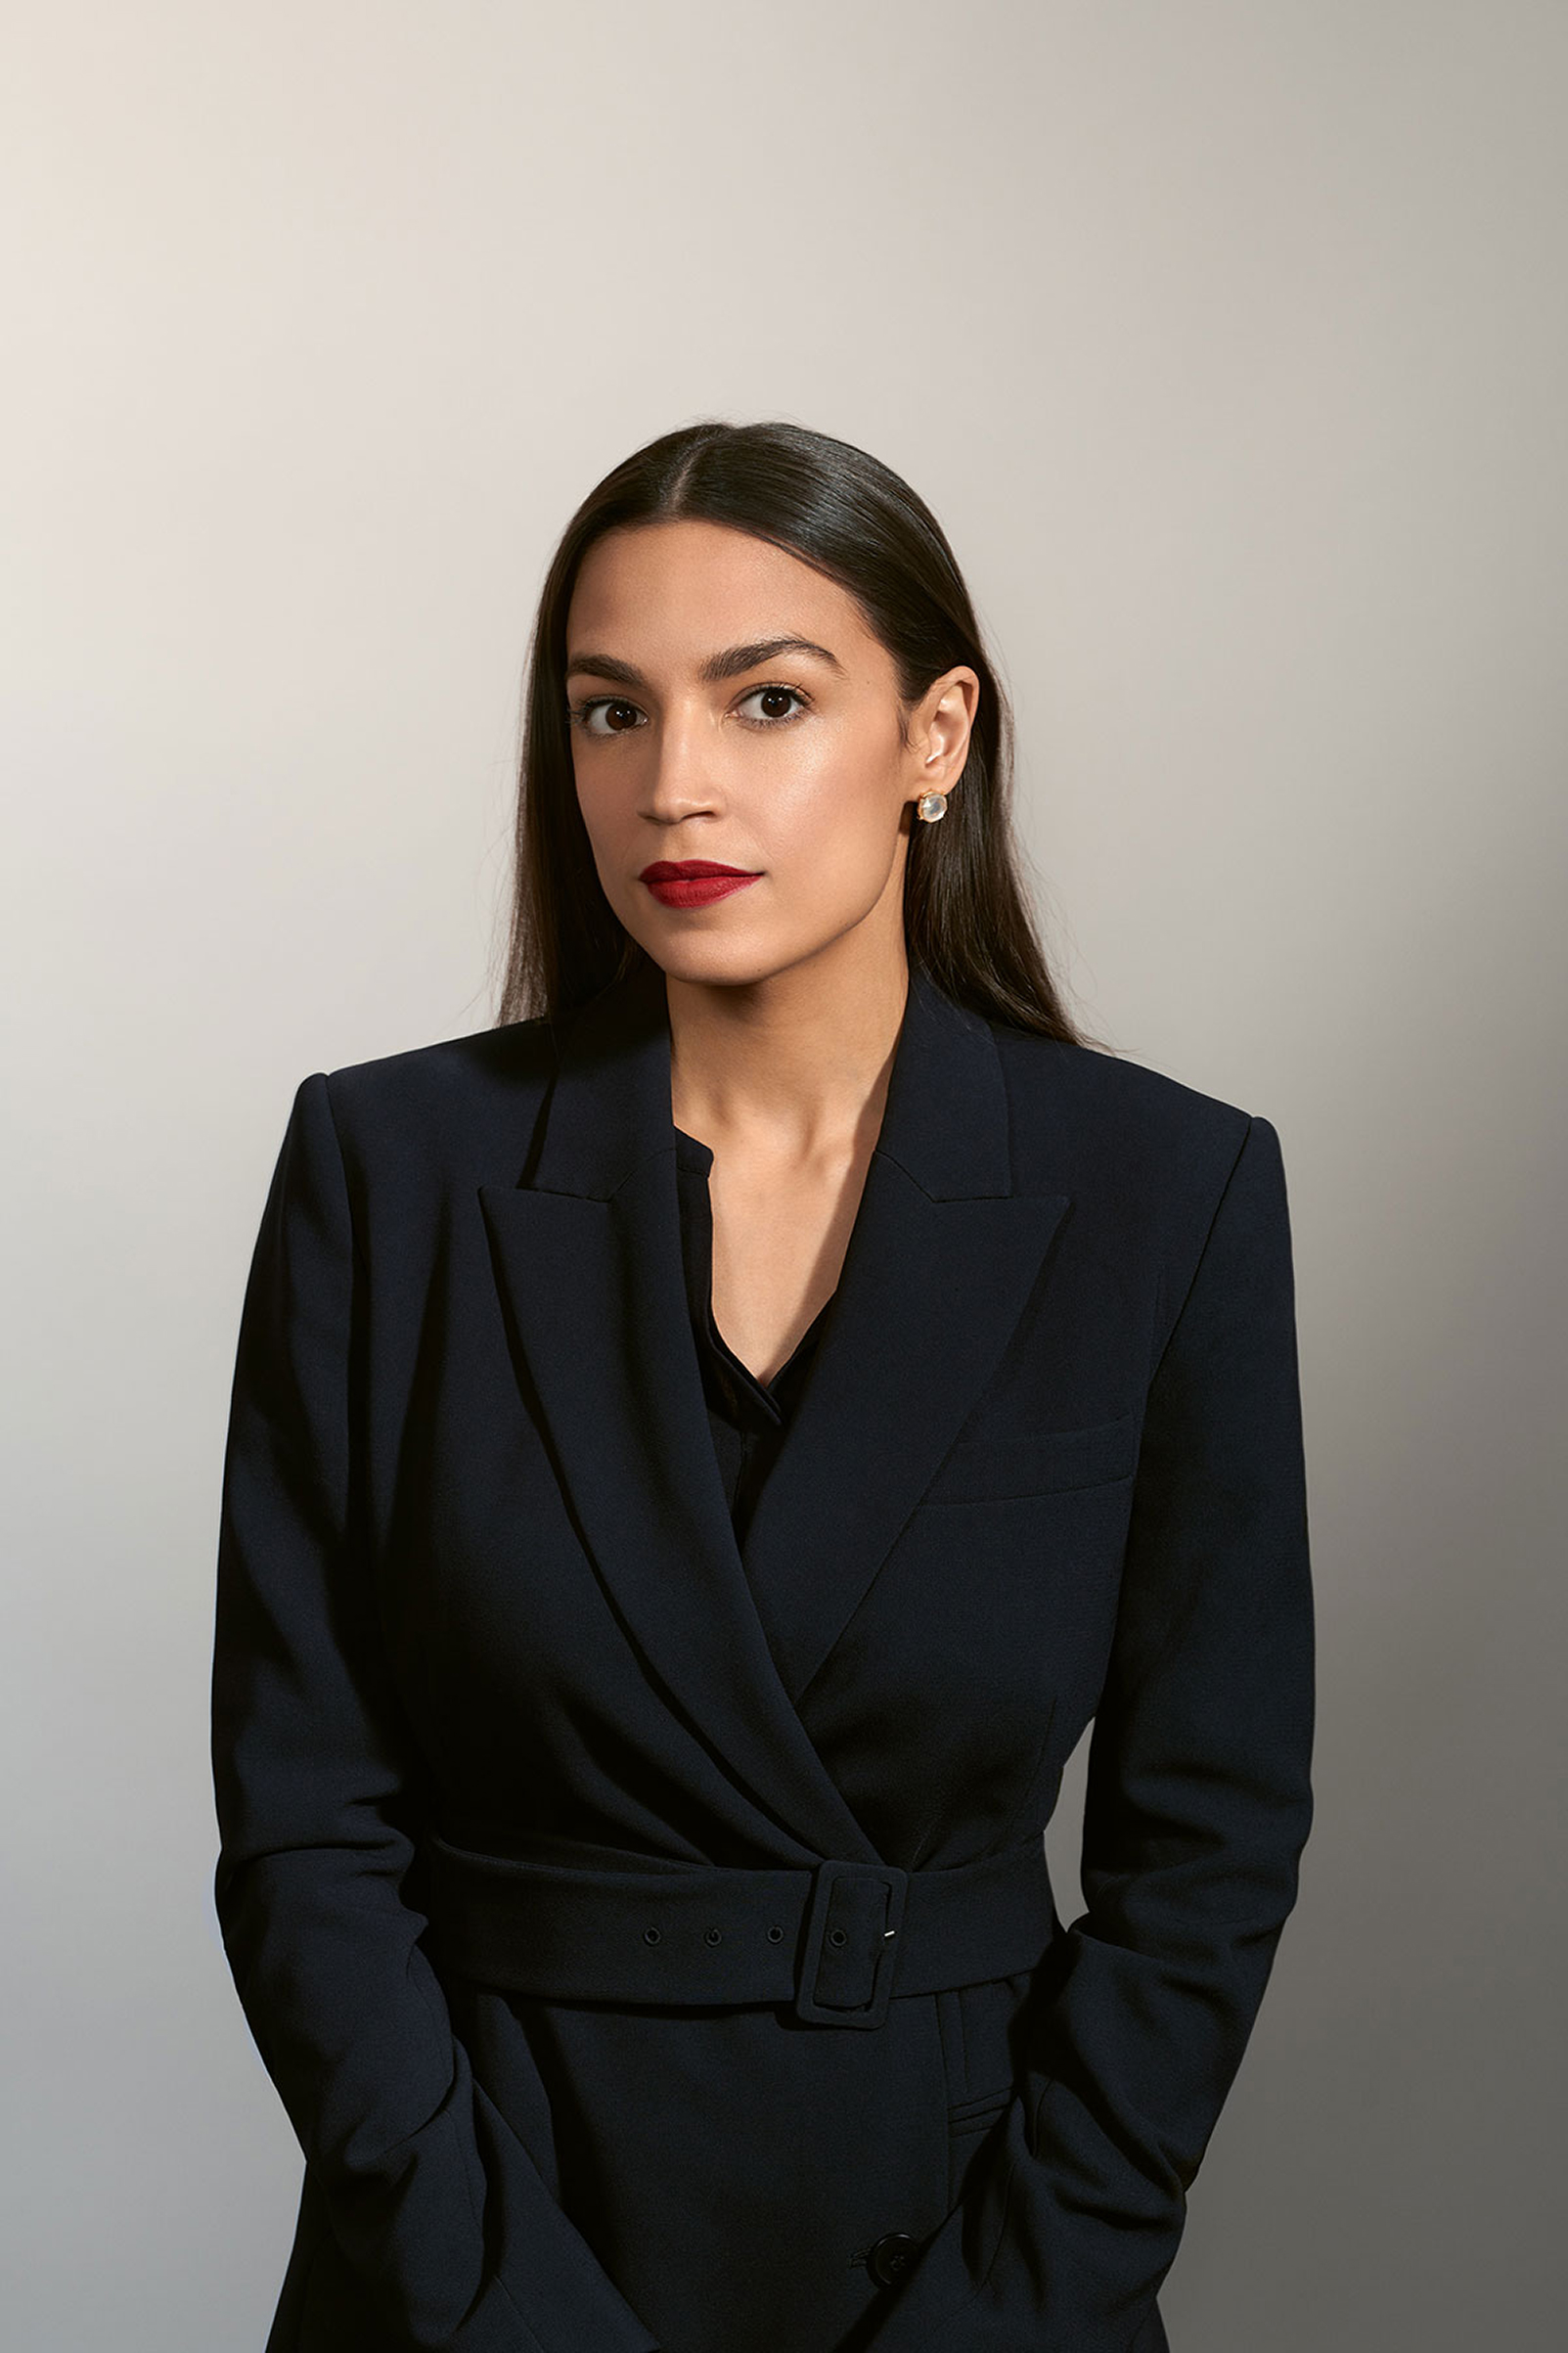 Rep. Alexandra Ocasio-Cortez.  TIME 100 Most Influential People,  April 29 issue.